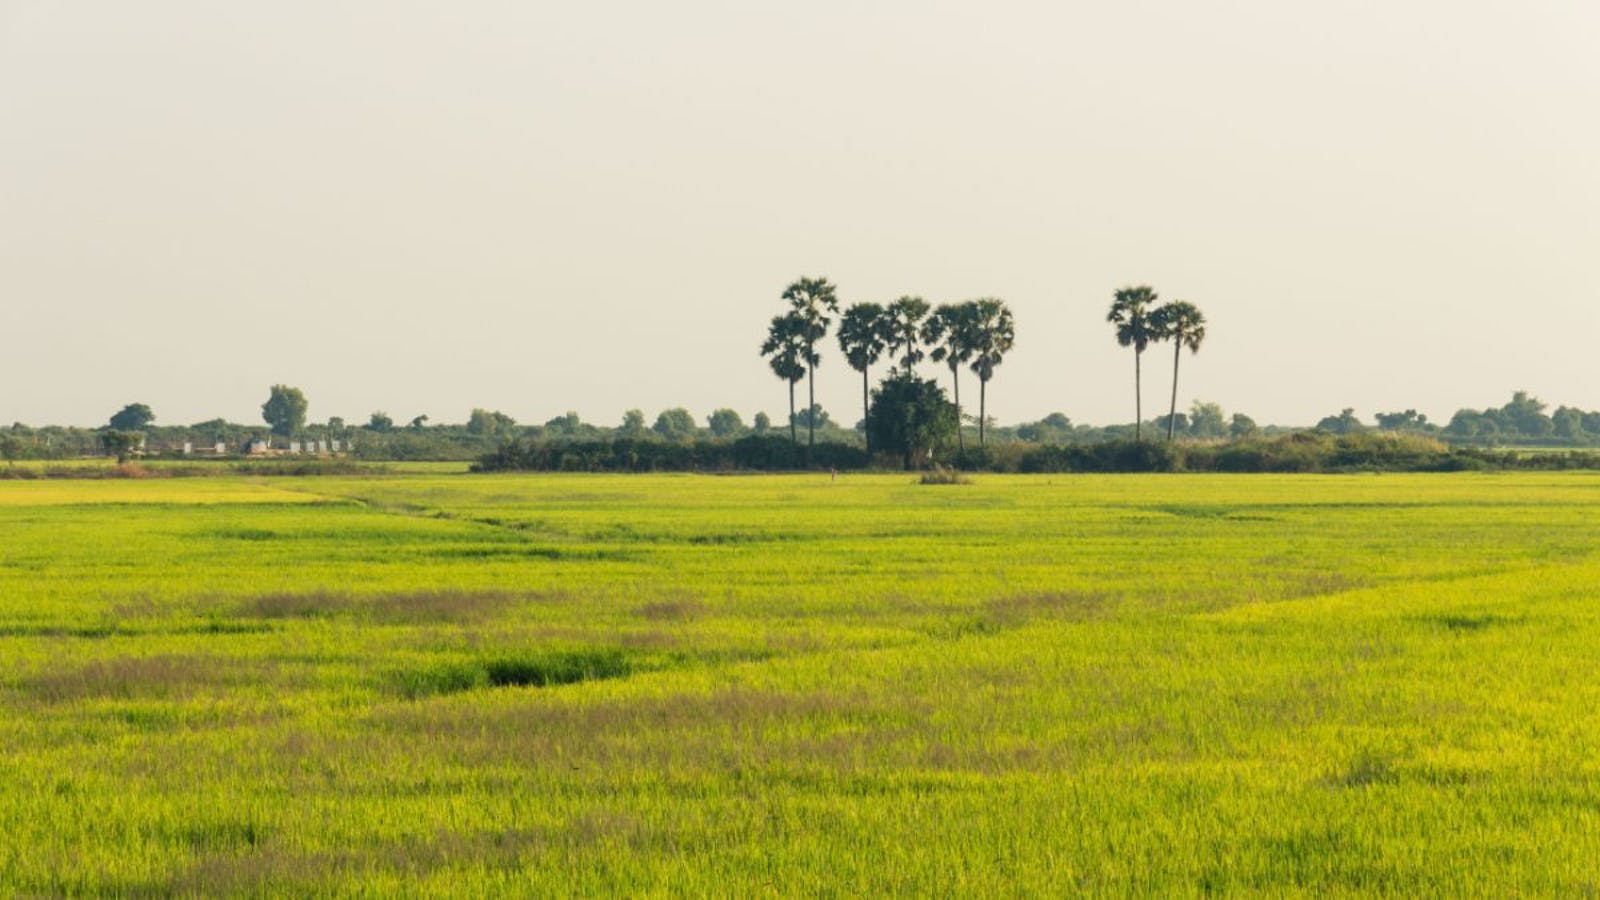 Tonle Sap Freshwater Swamp Forests